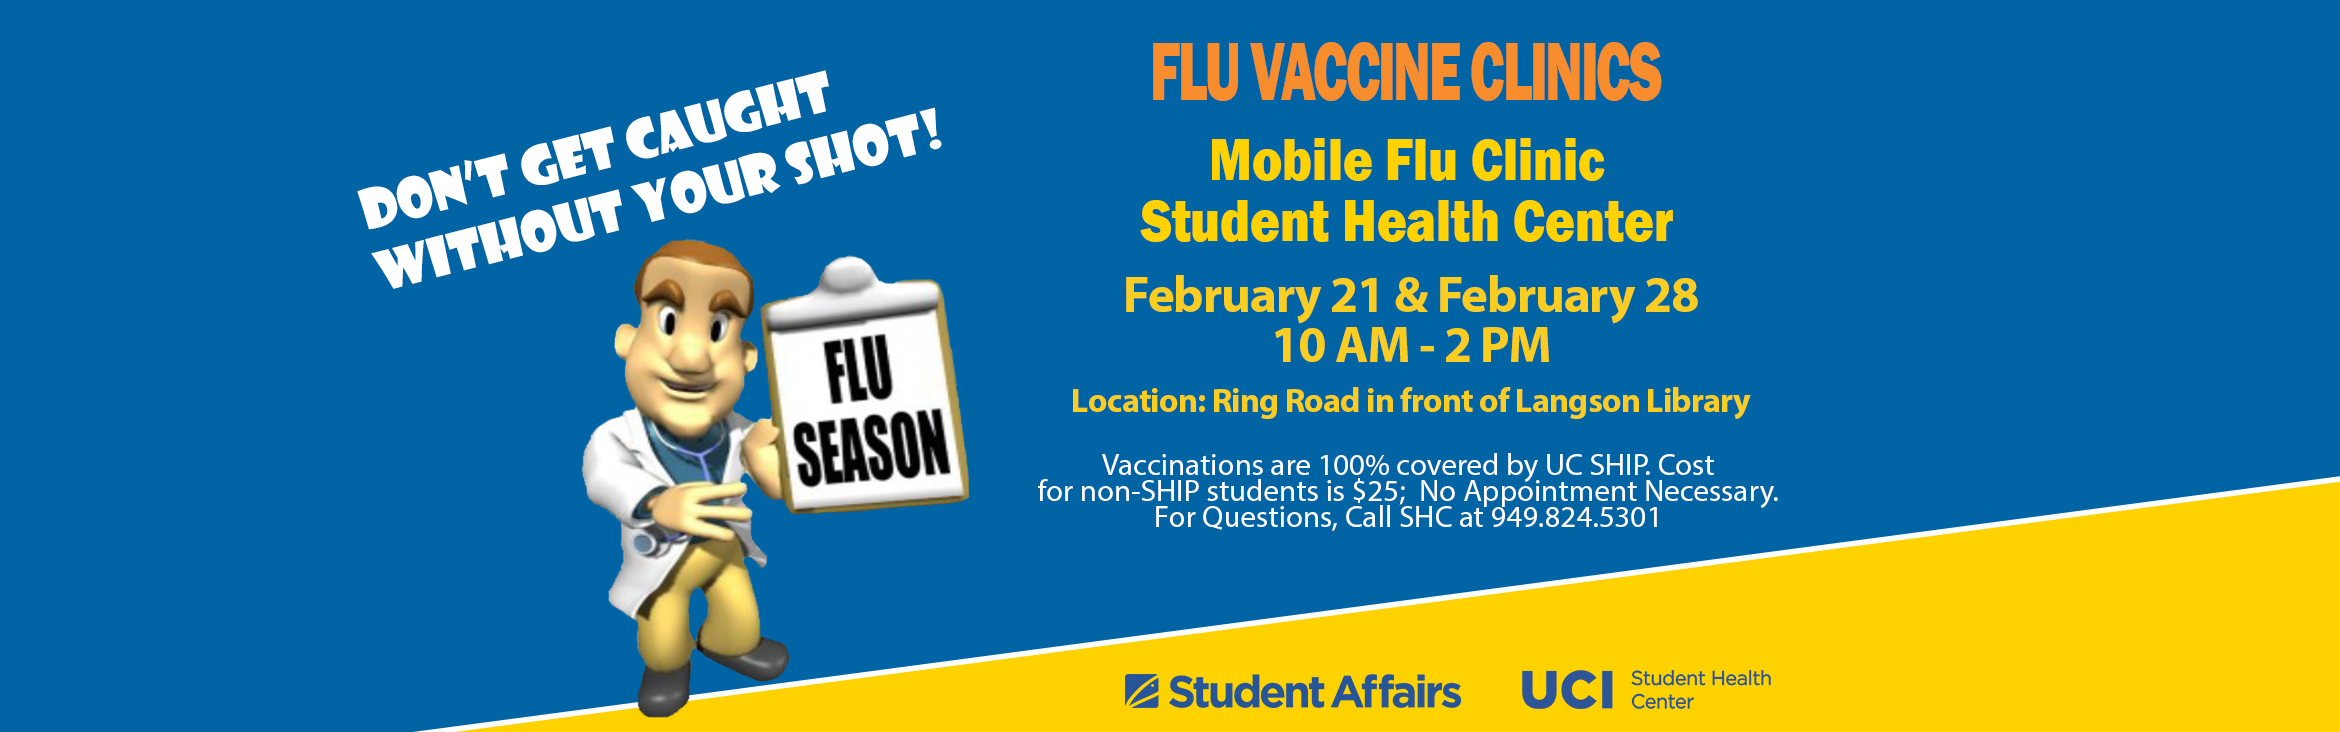 Don' Get Caught Without Your Shot! Upcoming Flu Vaccine Clinics, Mobile Flu Clinic Student Health Center, February 21 & February 28 10AM - 2PM Location: Ring Road in front of Langson Library.  Vaccinations are 100% covered by UC SHIP. Cost for non-SHIP